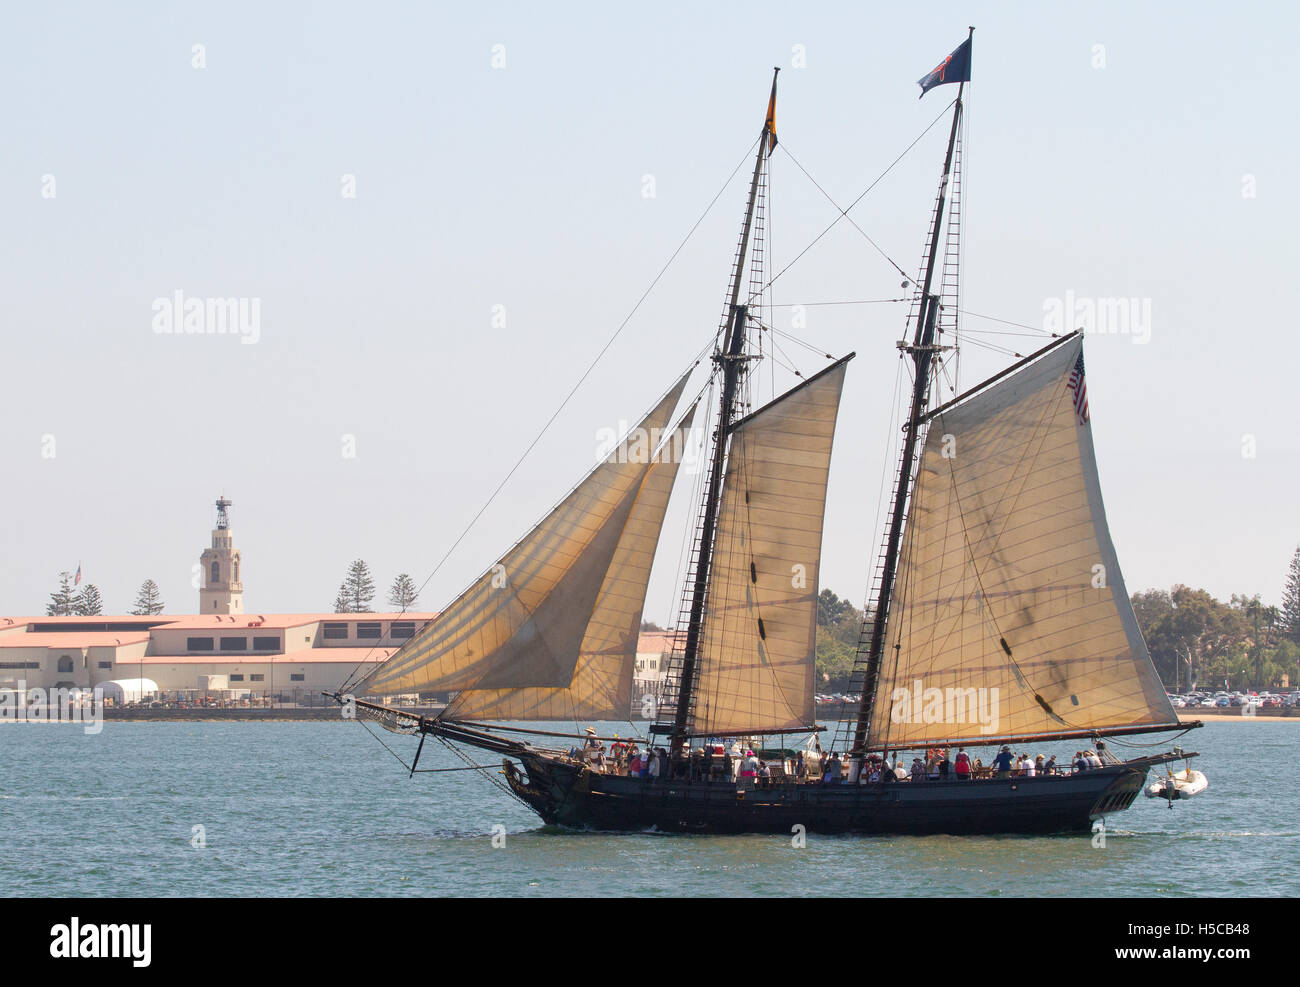 Tall ship Spirit of Dana Point in 2016 Festival of Sail, Parade of Ships, San Diego Bay, CA - Stock Image